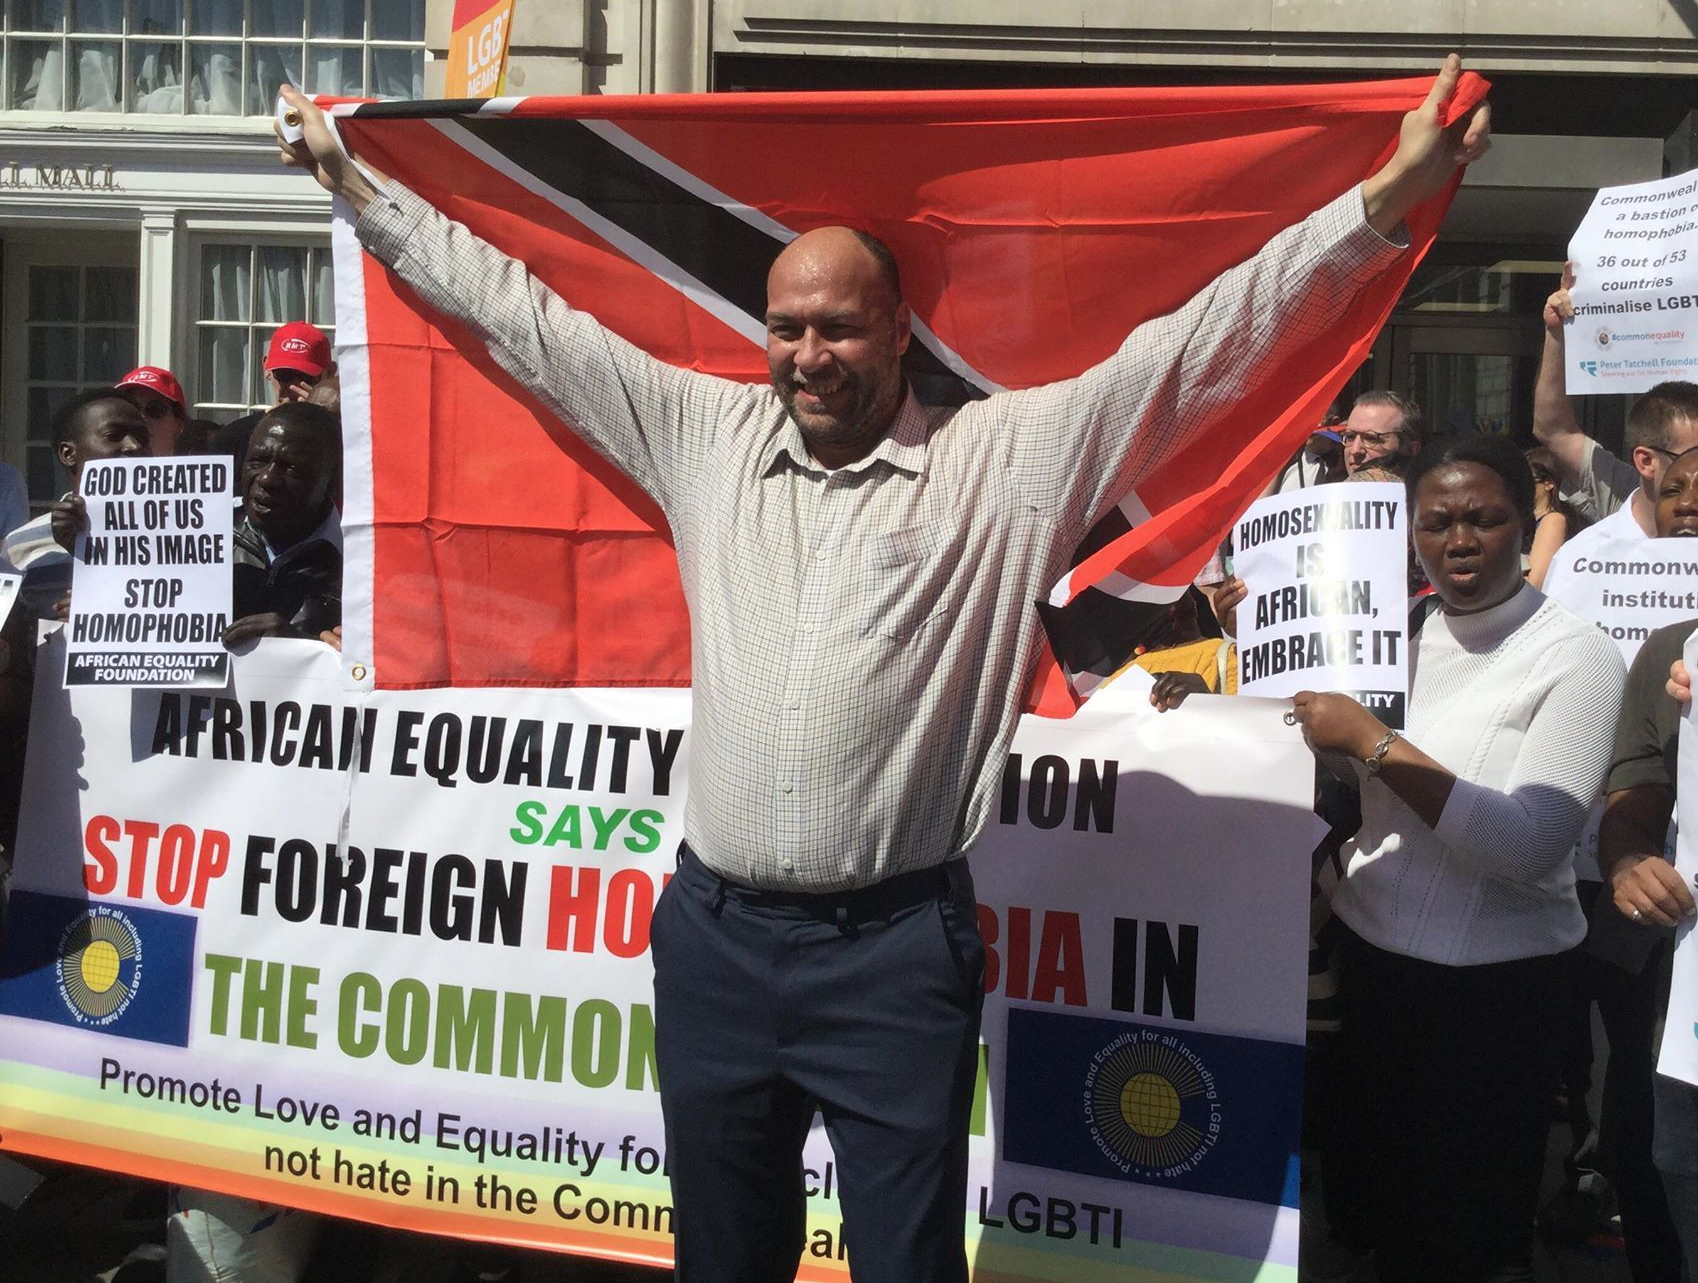 In London in April, Trinidadian/British activist Jason Jones celebrates the victory in his lawsuit to overturn the Trinidad anti-gay law -- and pushes for other Commonwealth countries to follow suit. (Photo courtesy of Edwin Sesange)